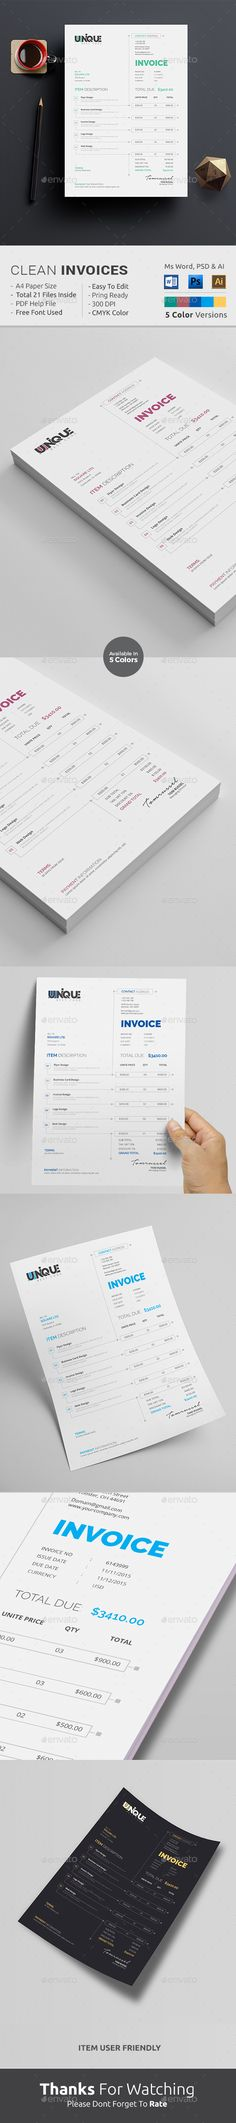 Brief - Estimation - Invoice Templates InDesign INDD Proposal - invoice design template